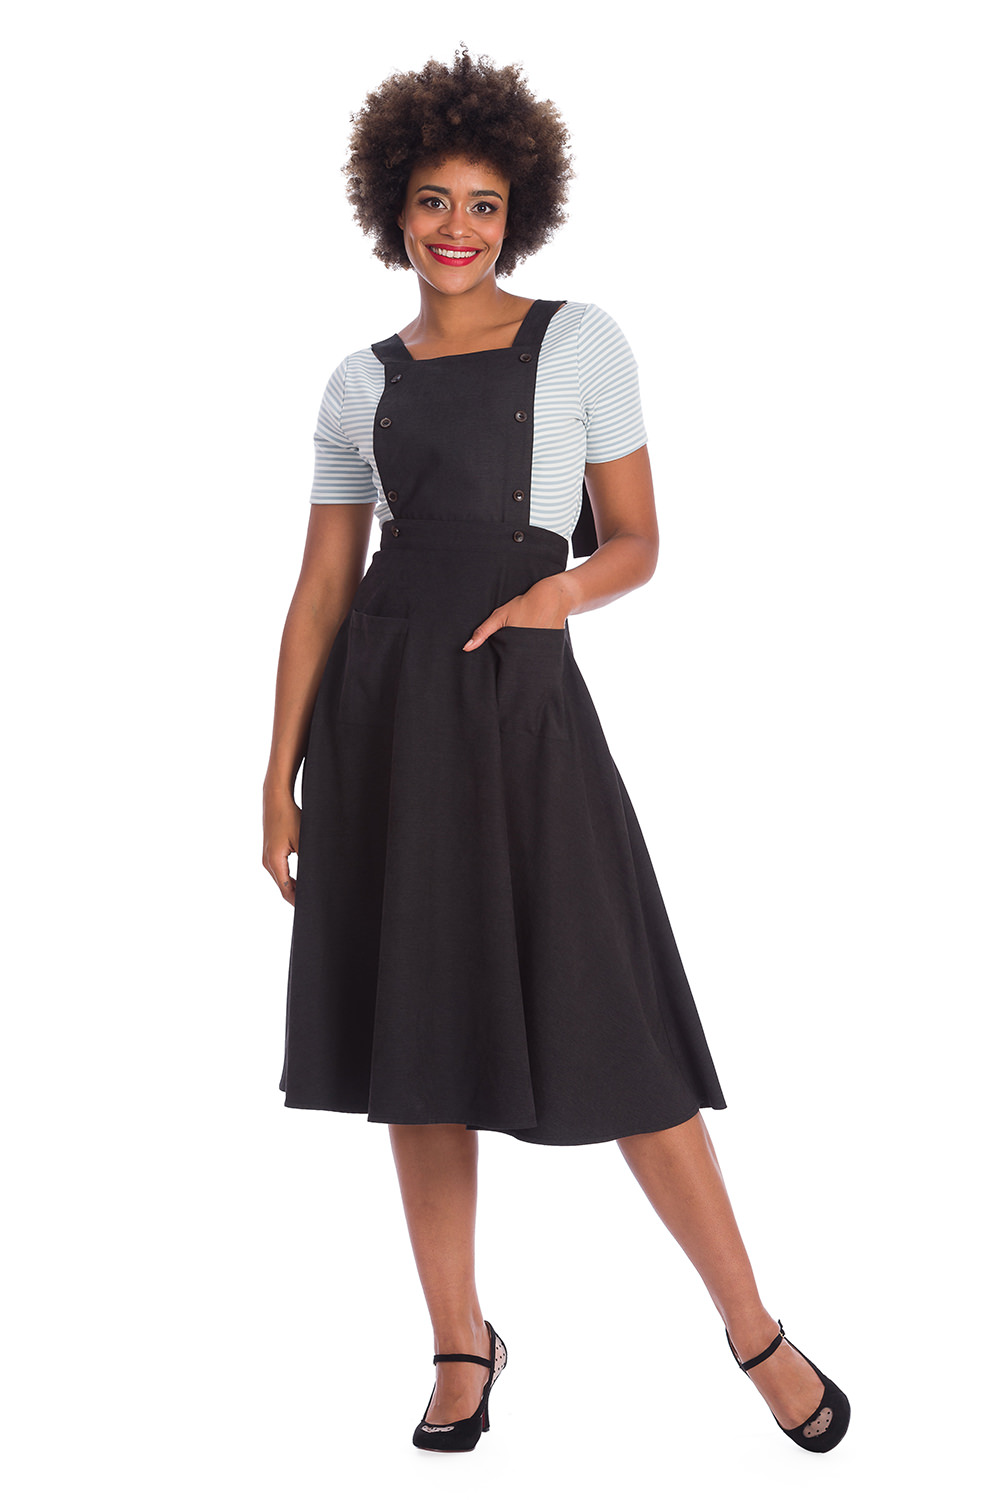 Banned Retro Book Smart Vintage Style Black Pinafore 50s Dress Skirt